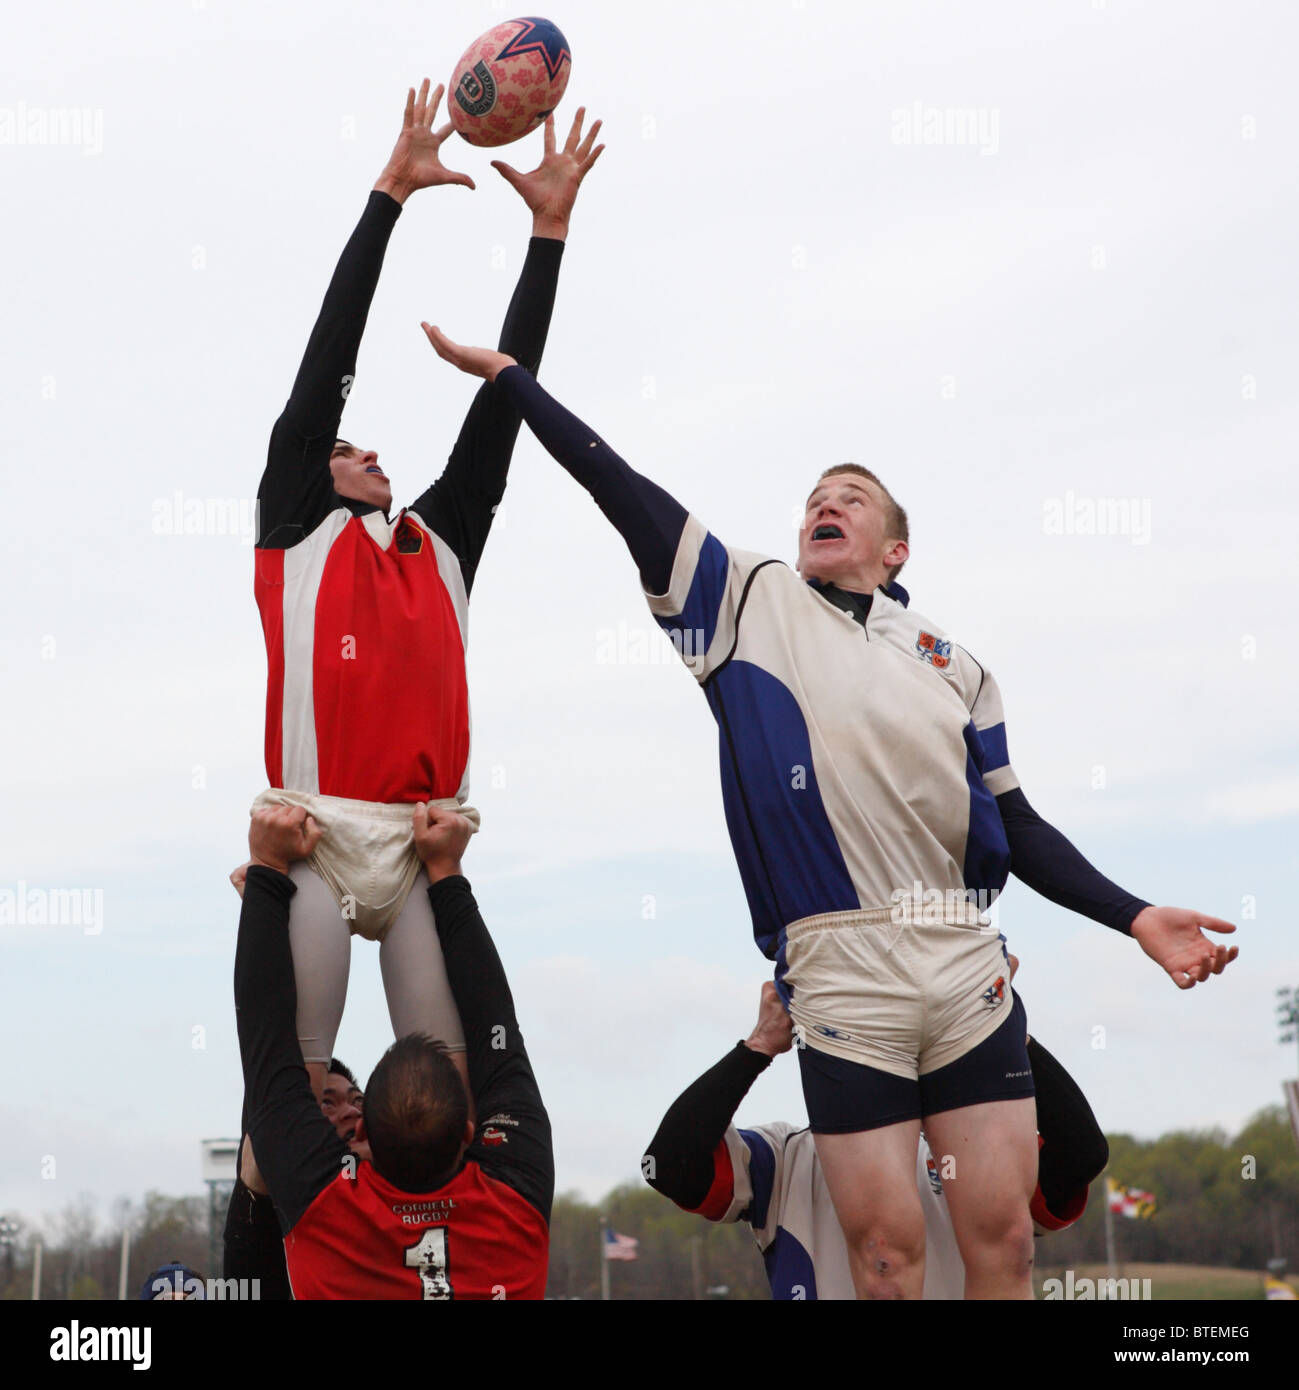 A Cornell University player (l) and University of Virginia player (r) vie for the ball during a rugby match. - Stock Image